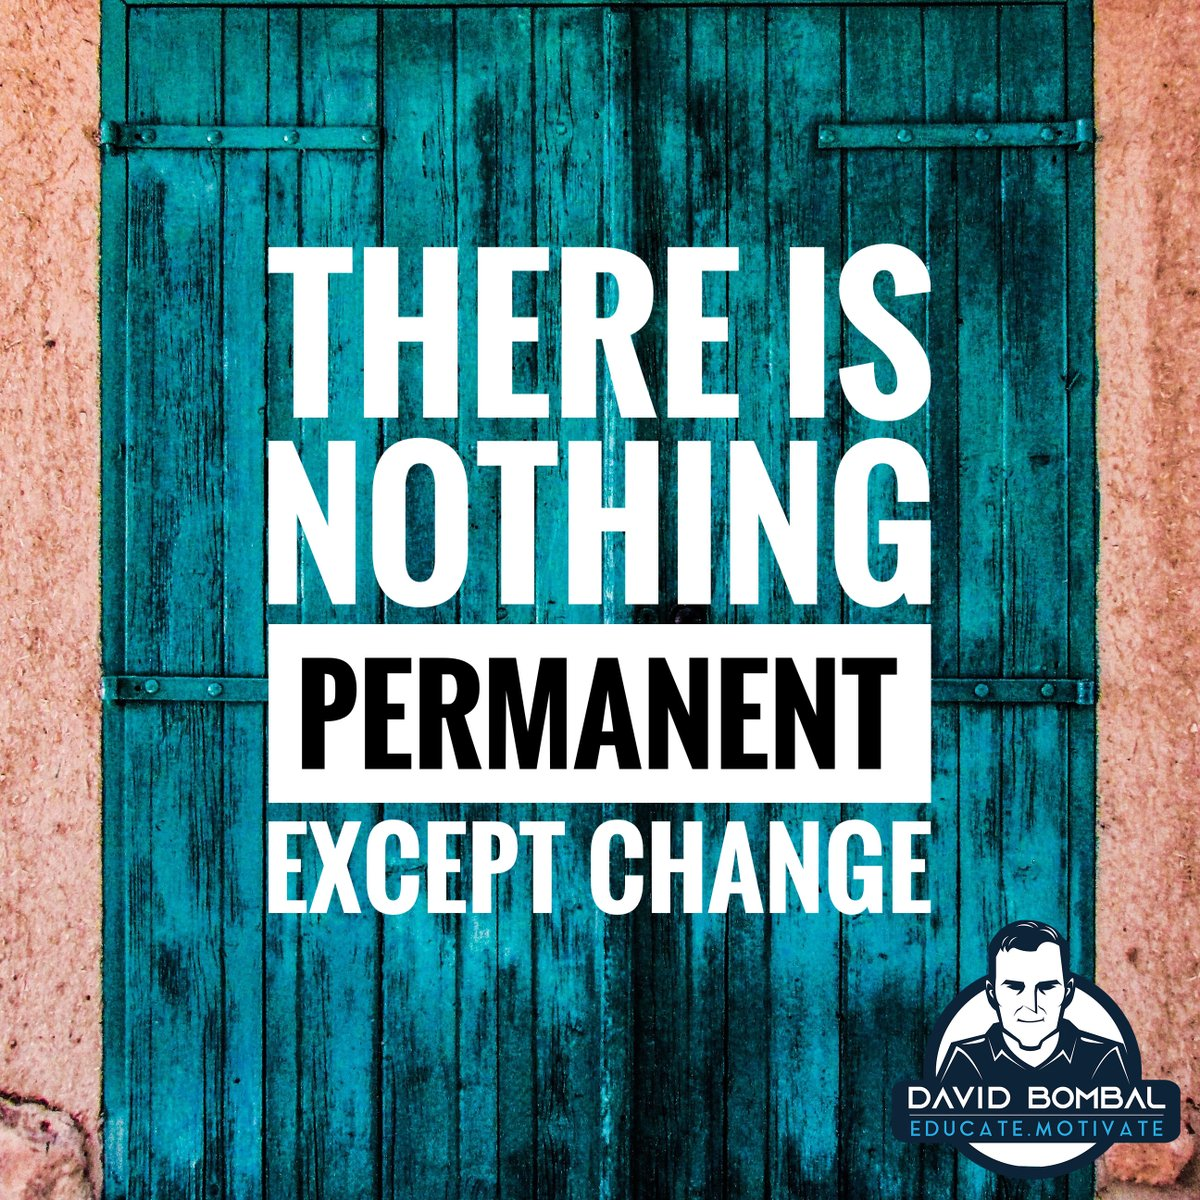 There is nothing permanent except change. - Heraclitus  #motivationquotes #dailymotivation #ccna #inspirationalquote #ciscopic.twitter.com/xabVDoXXWY